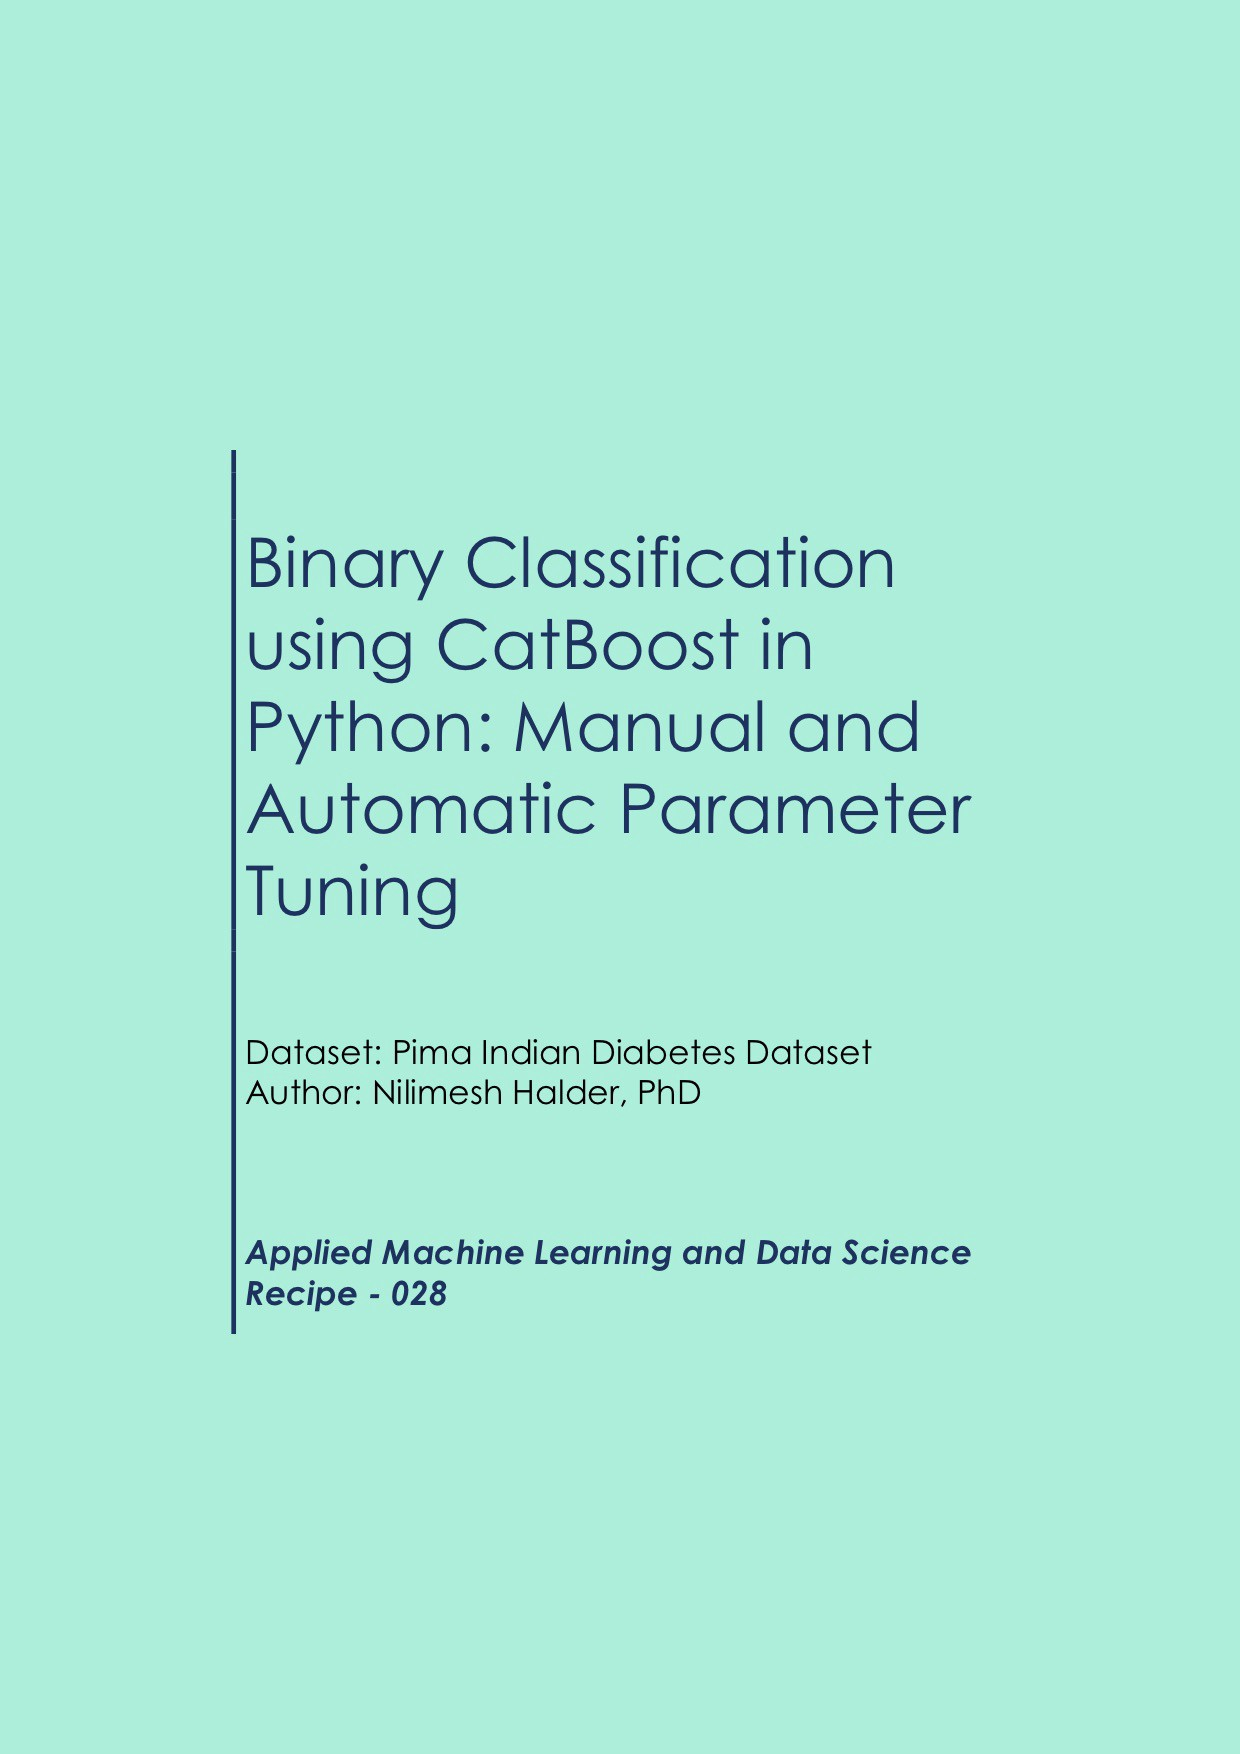 Binary Classification using CatBoost in Python: Manual and Automatic